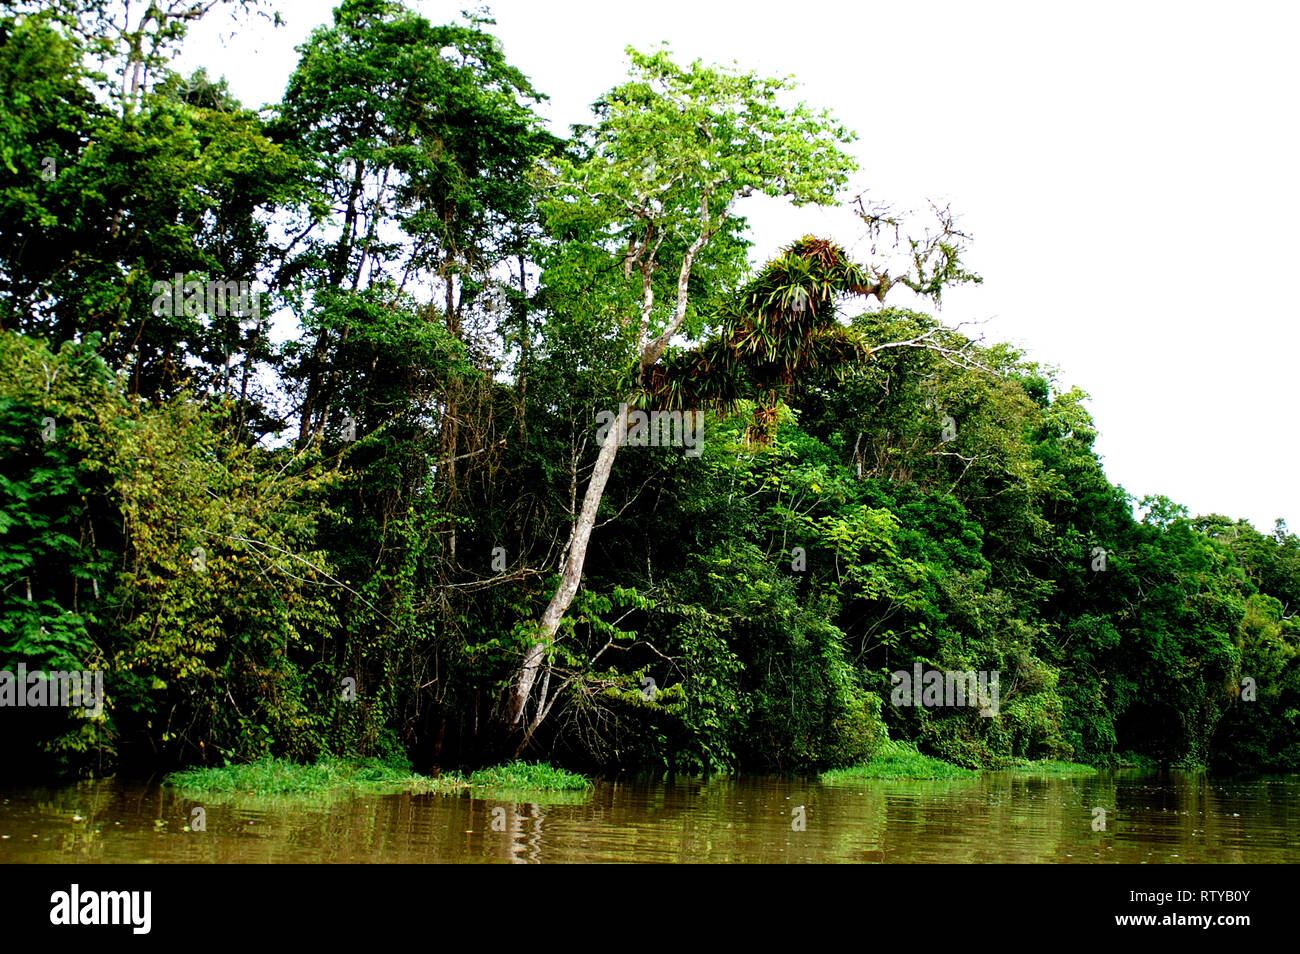 The Amazon rain forest is essentiel for human life on planet earth - Stock Image